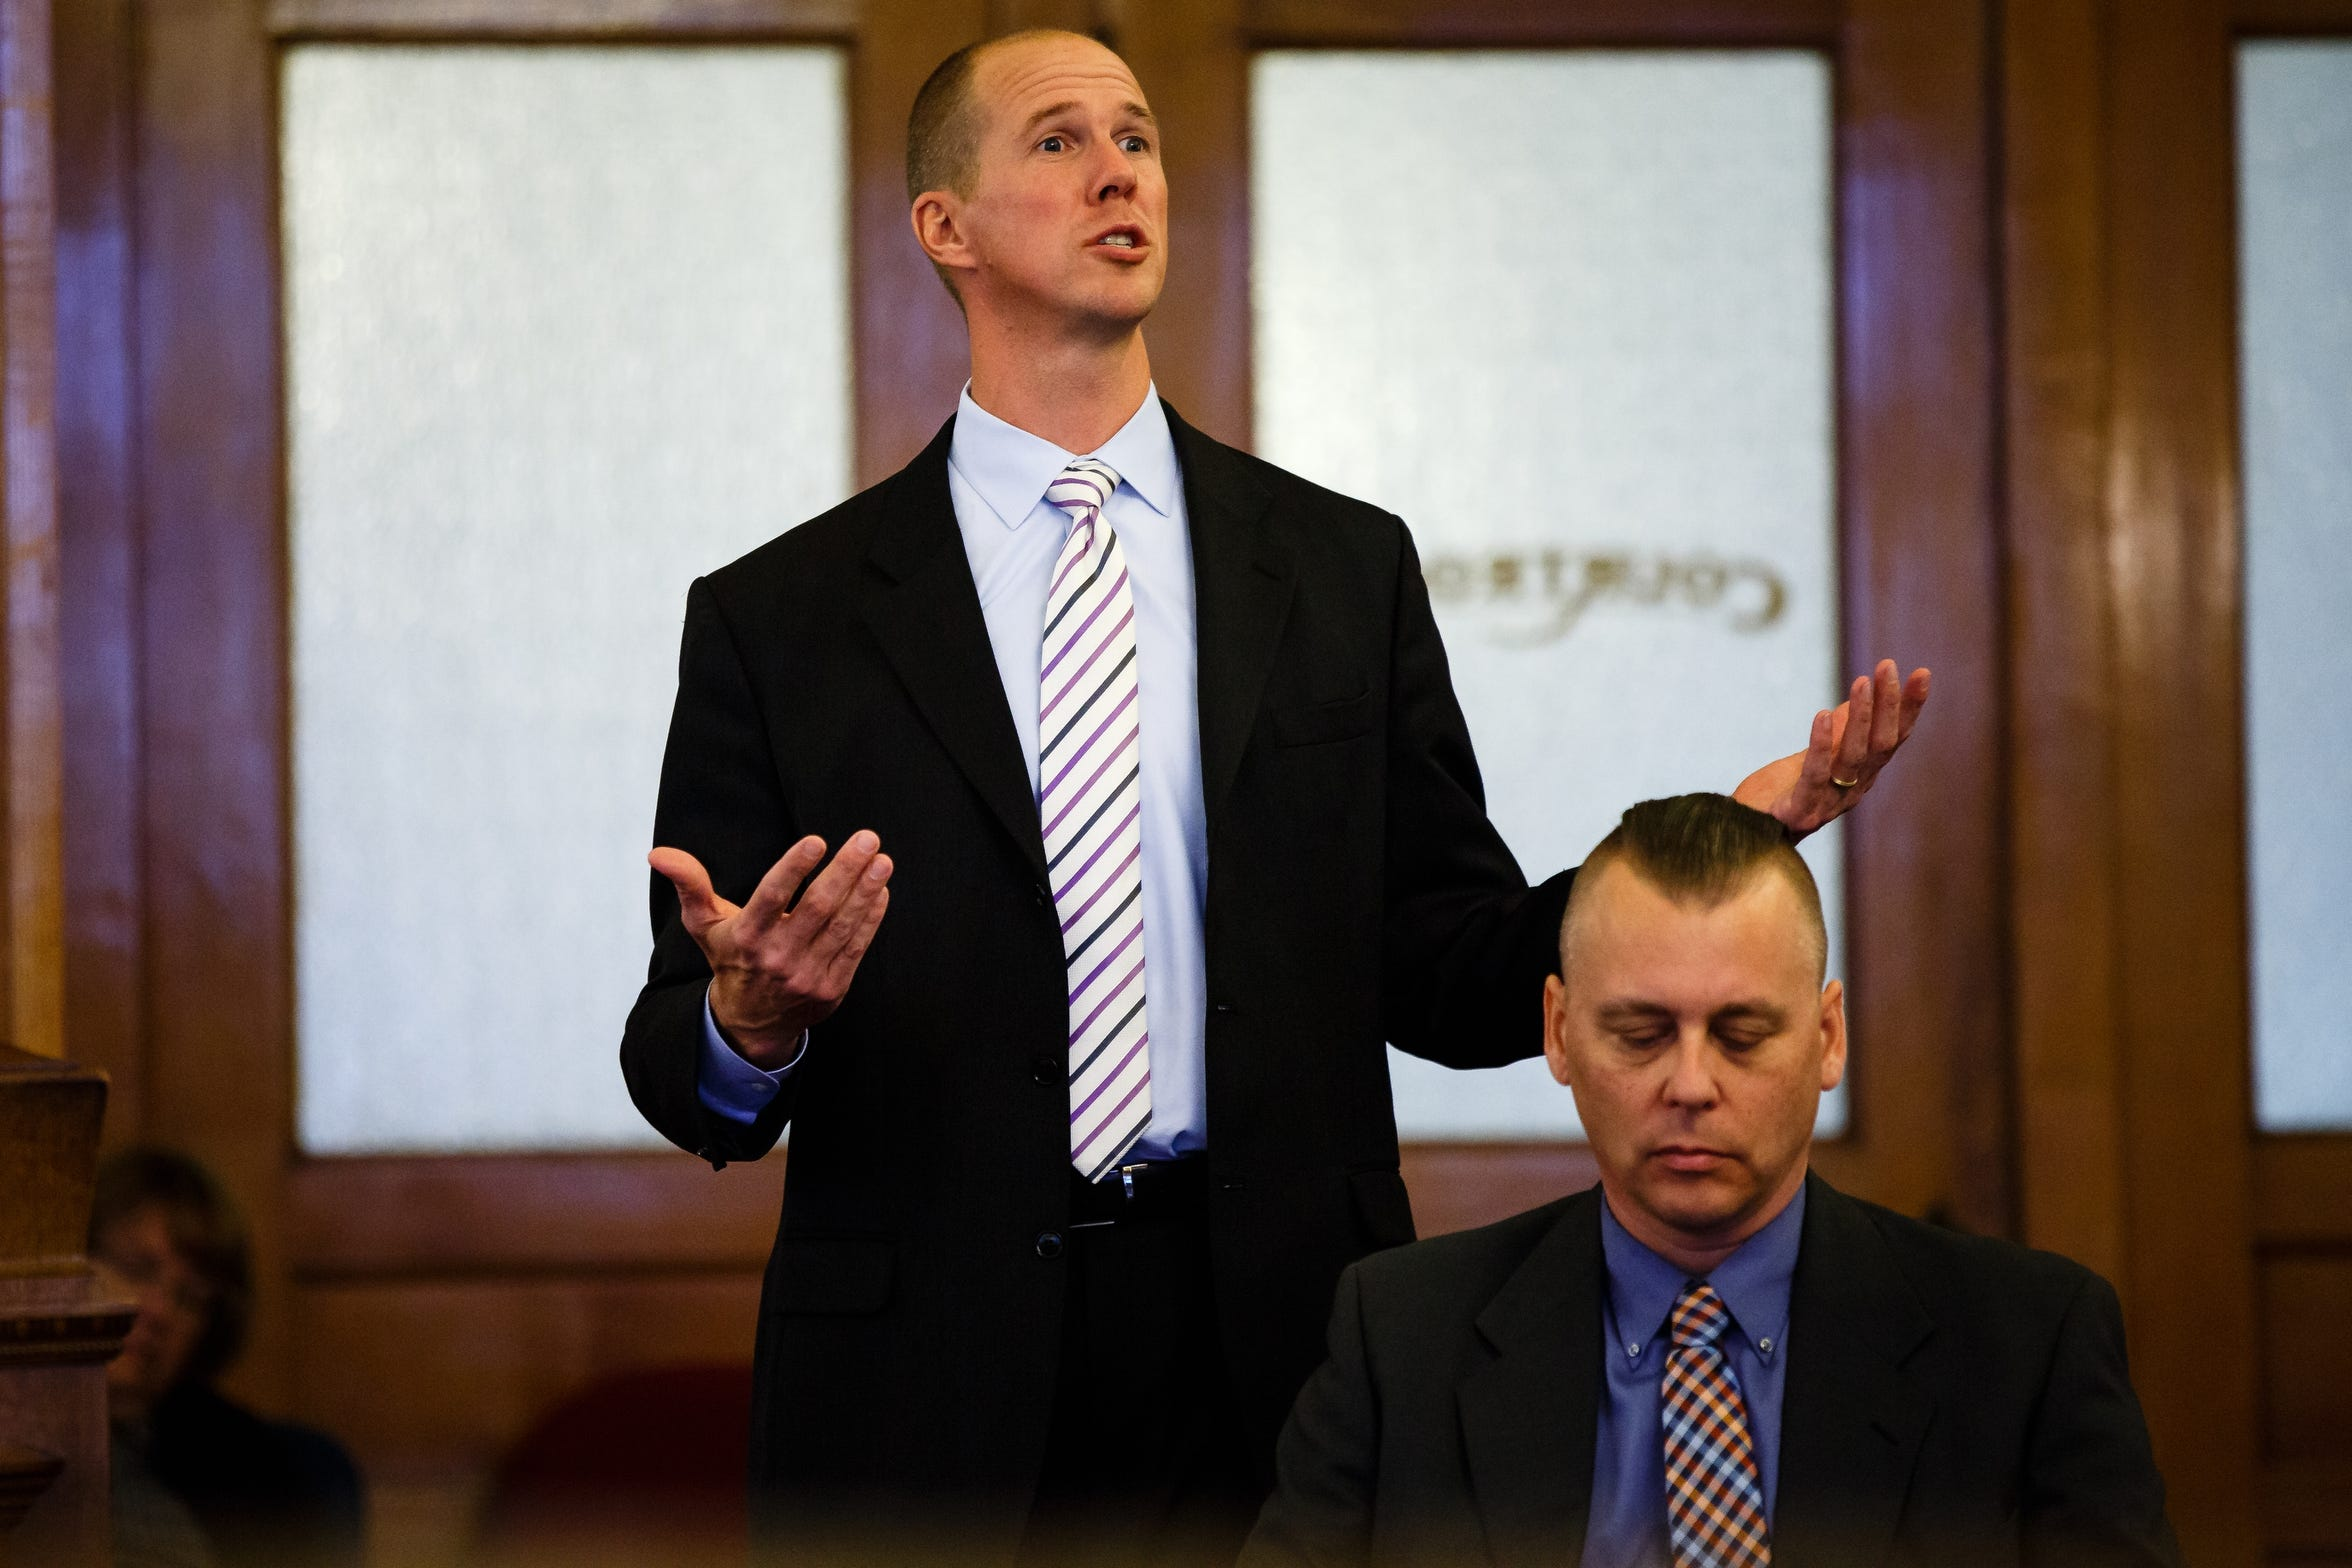 Troy Griffin, seated, listens as his defense lawyer, Robert Rehkemper, makes his opening statement at the Dallas County Courthouse on Monday, Oct. 22, 2018, in Adel. Griffin's ex-wife Gina Battani accused him of raping her repeatedly while they were married. A jury found Griffin not guilty.